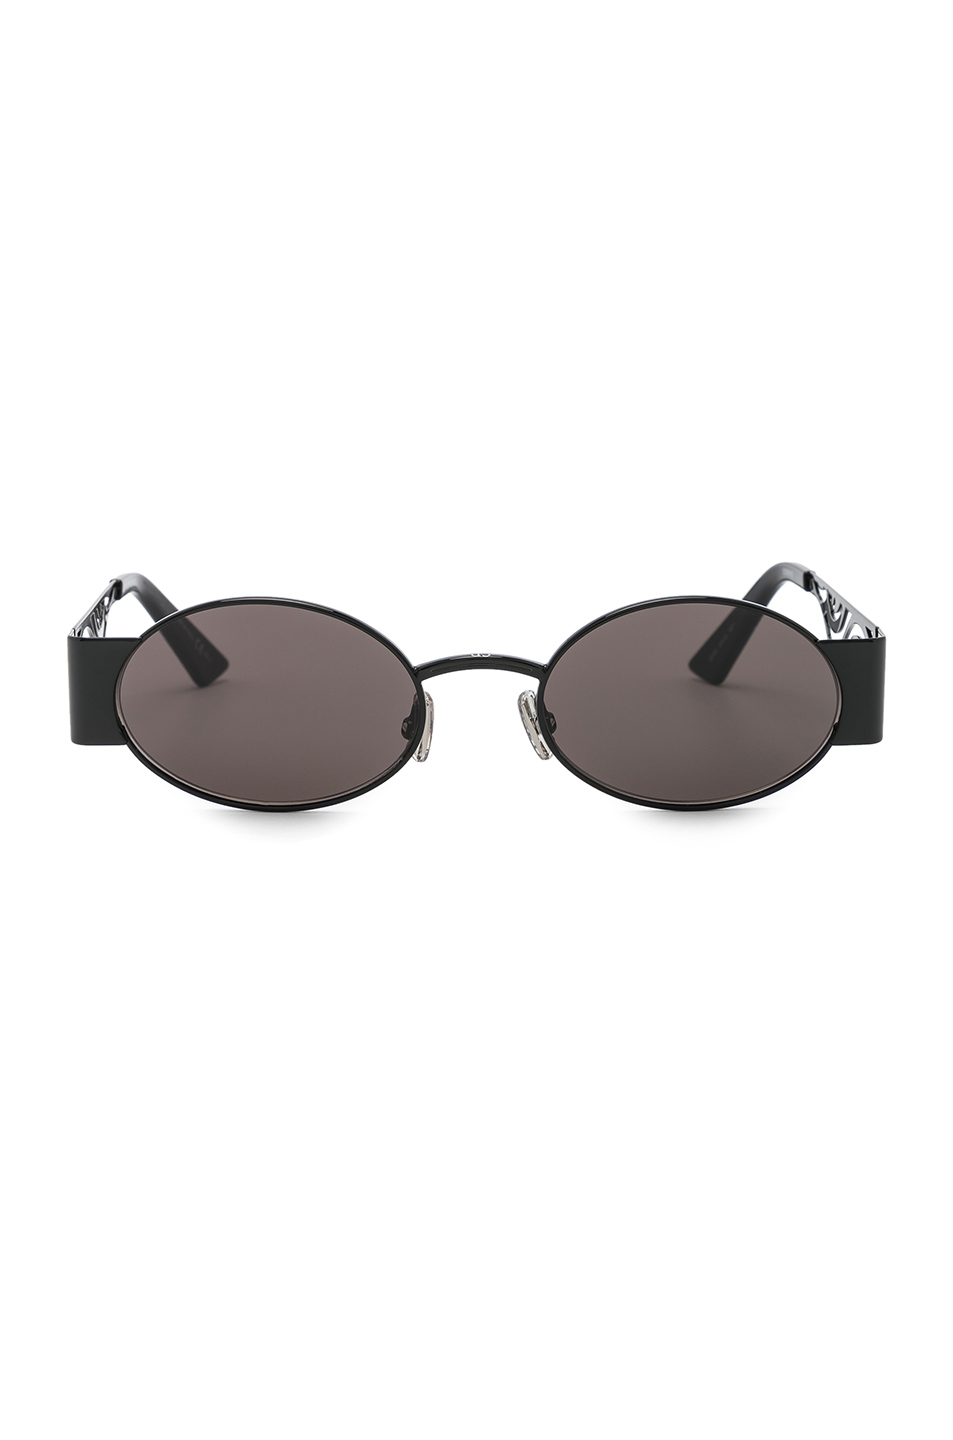 5b5f98bd5755 Dior Rave Sunglasses  Dior Rave Sunglasses ...